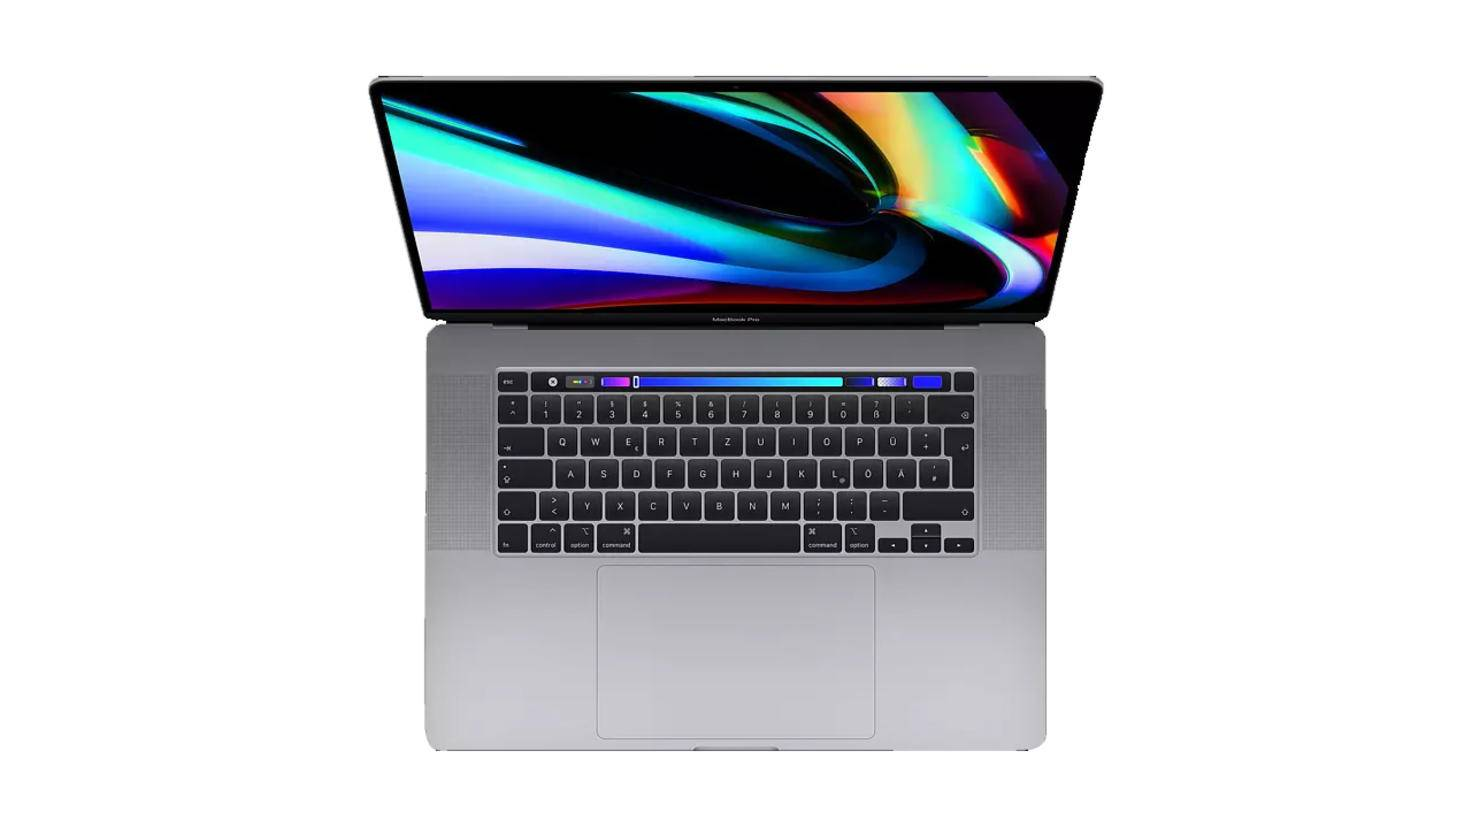 apple macbook pro 16 inch laptop video editing